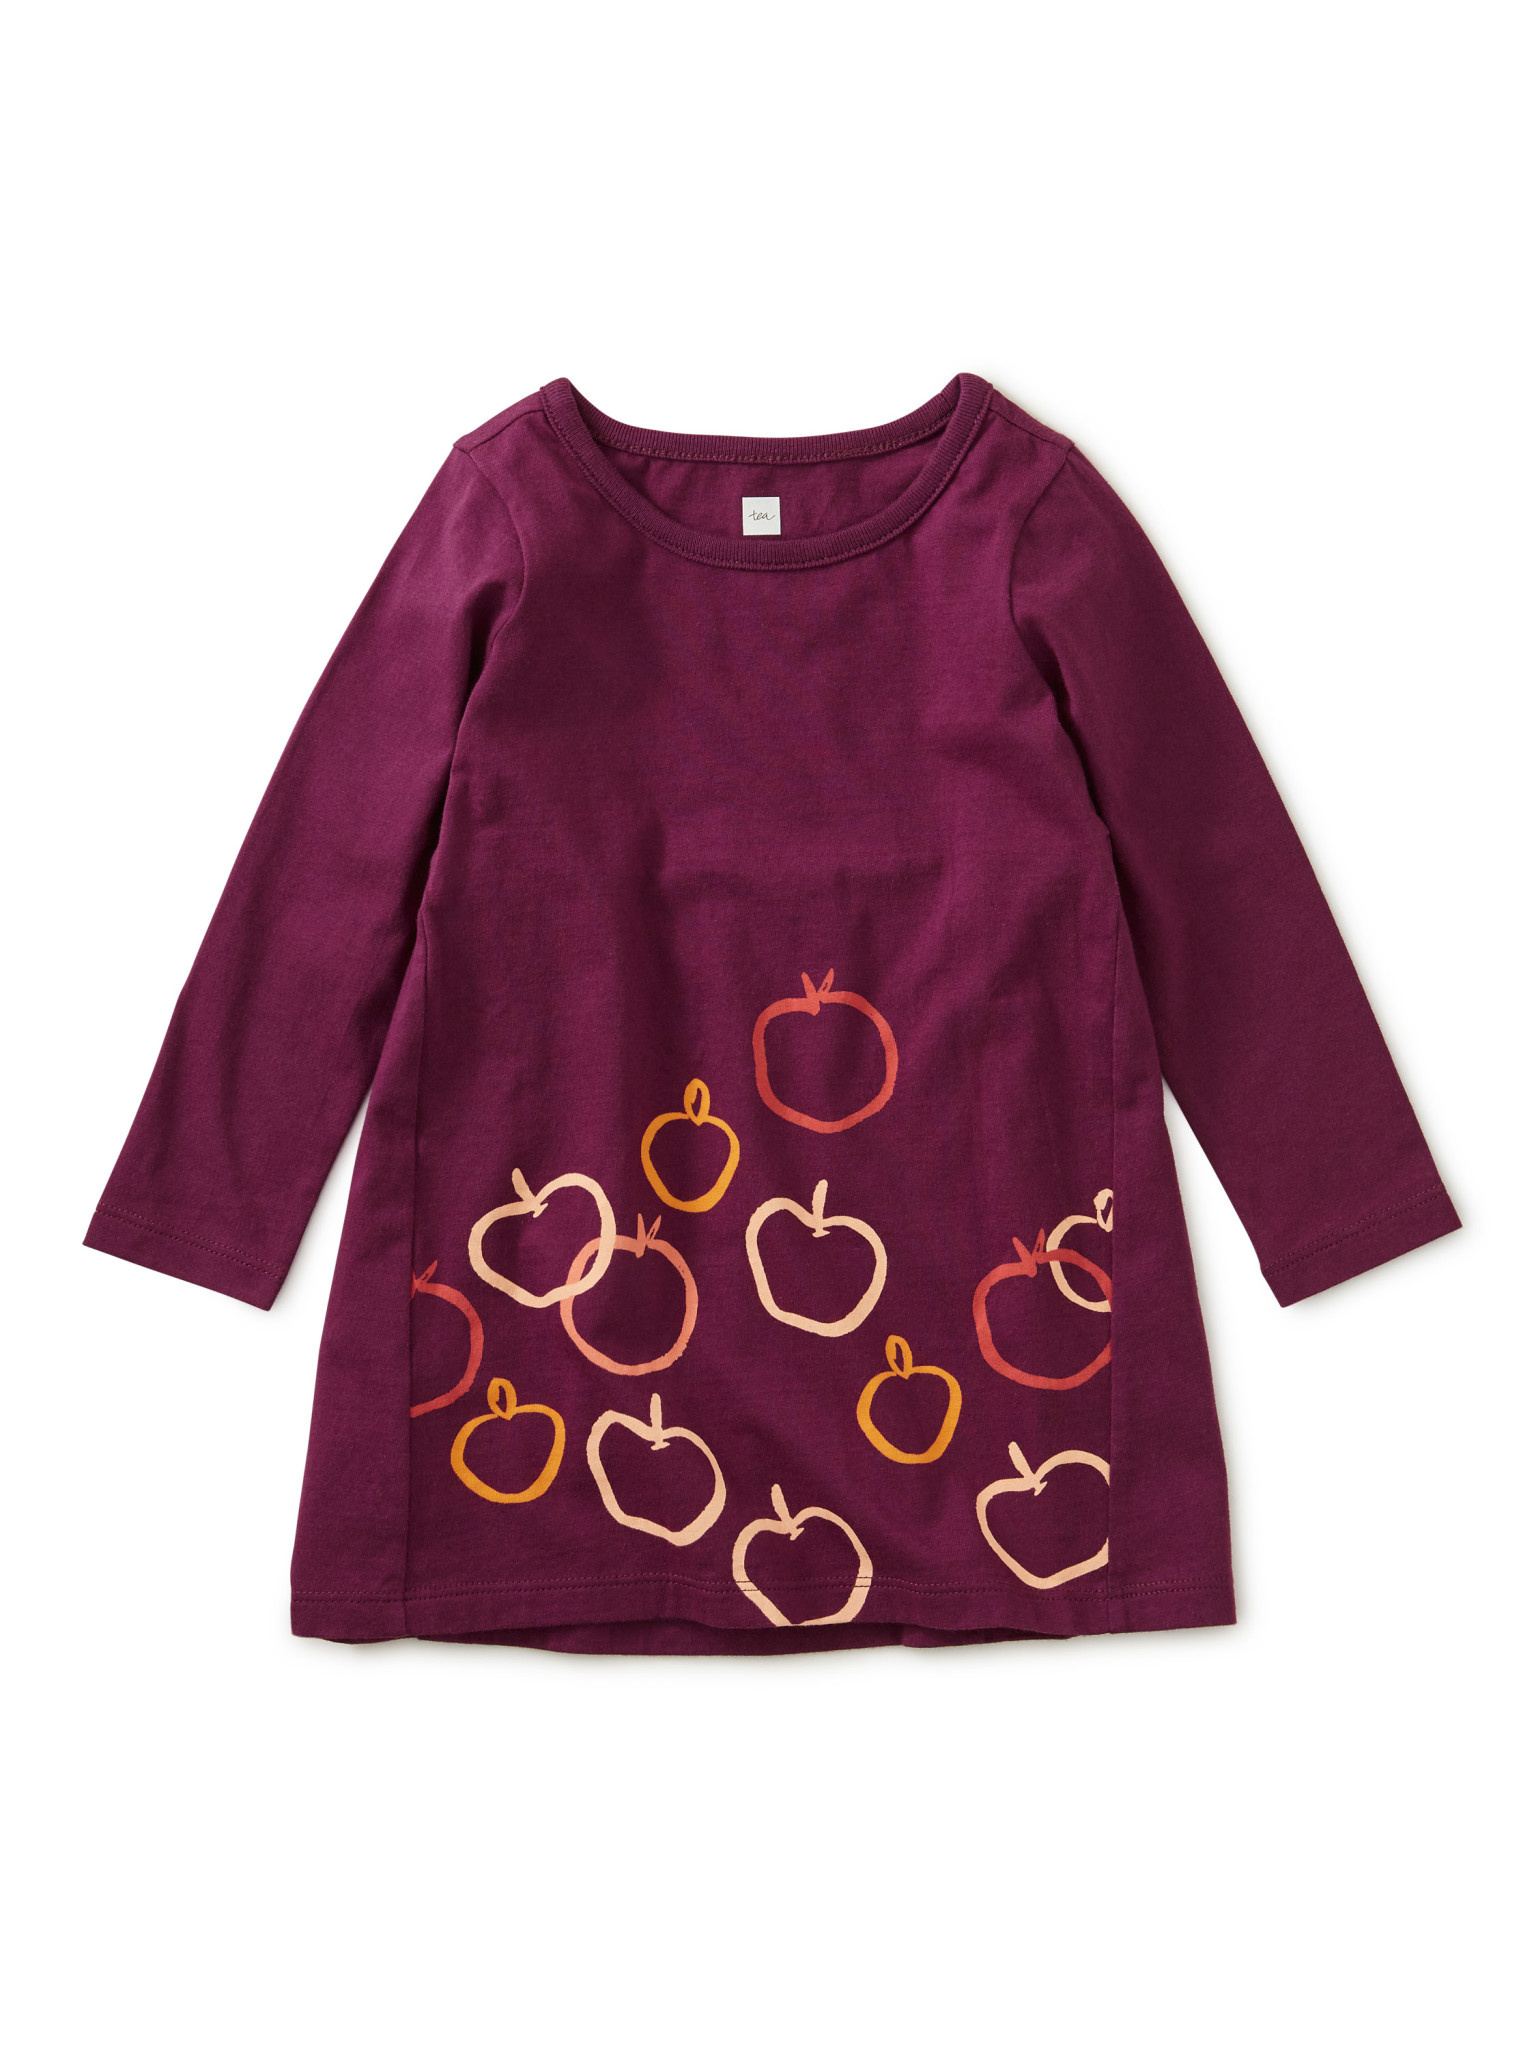 Tea Collection Golden Apples Baby Dress